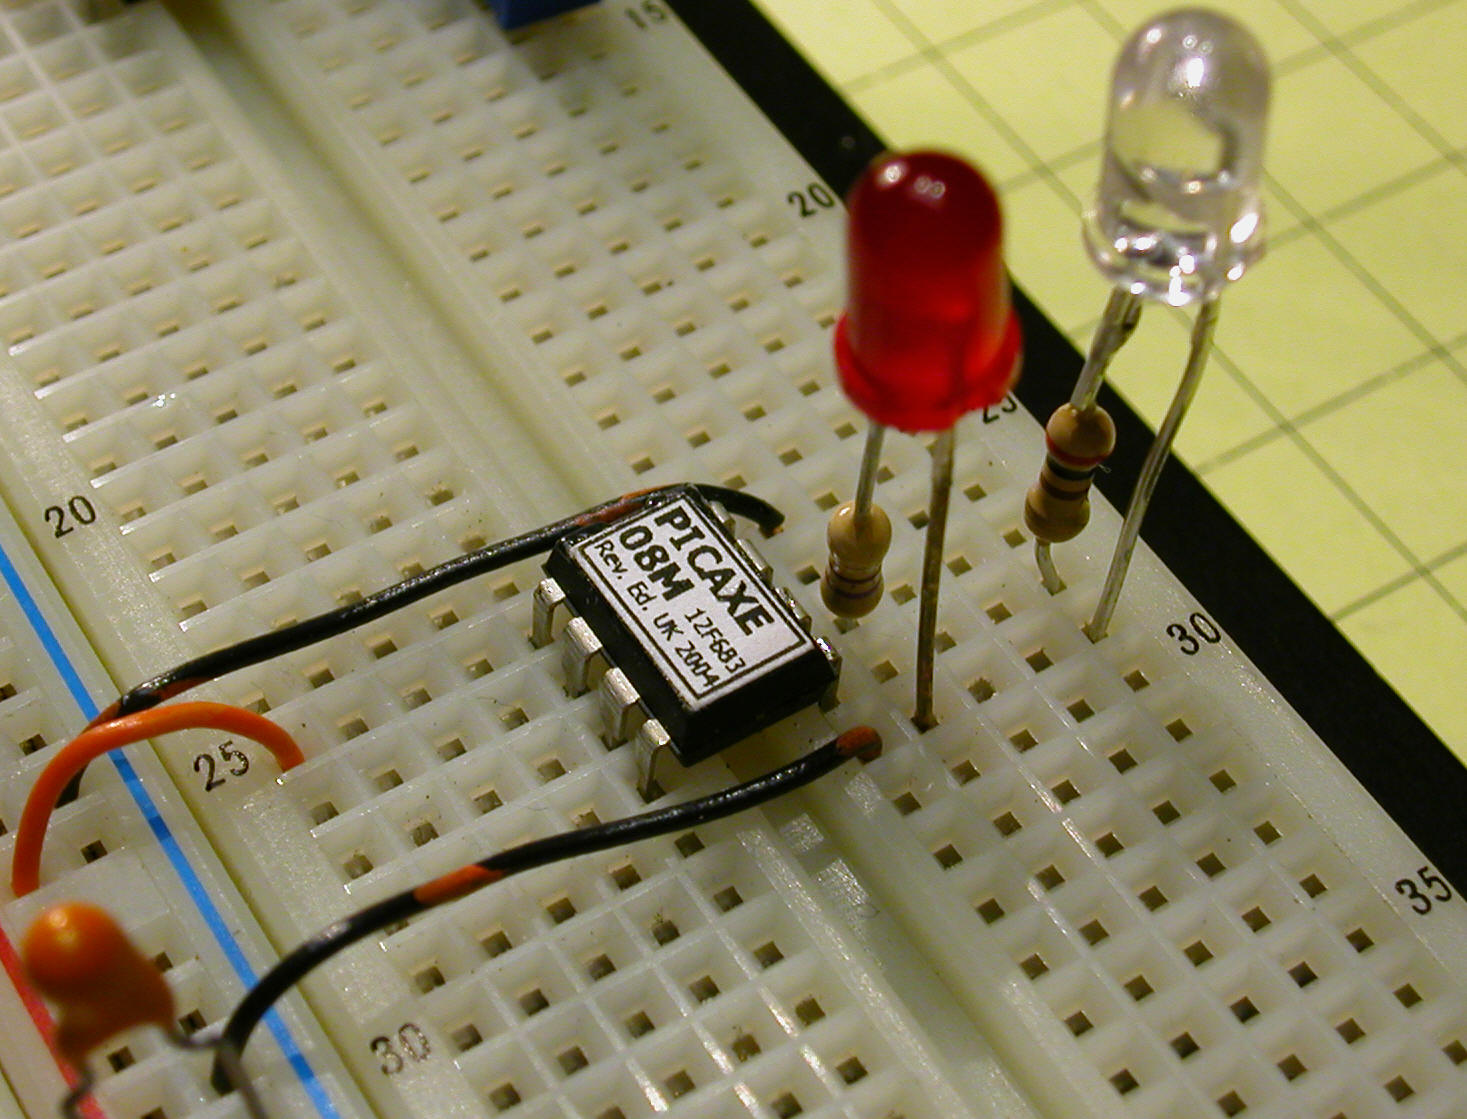 Pulsed Ir Sensor Infraredemitter38khz555timercircuitschematicgif The Infrared Led Also Has Its Resistor Attached And Goes Between Pin 5 On Picaxe Ground